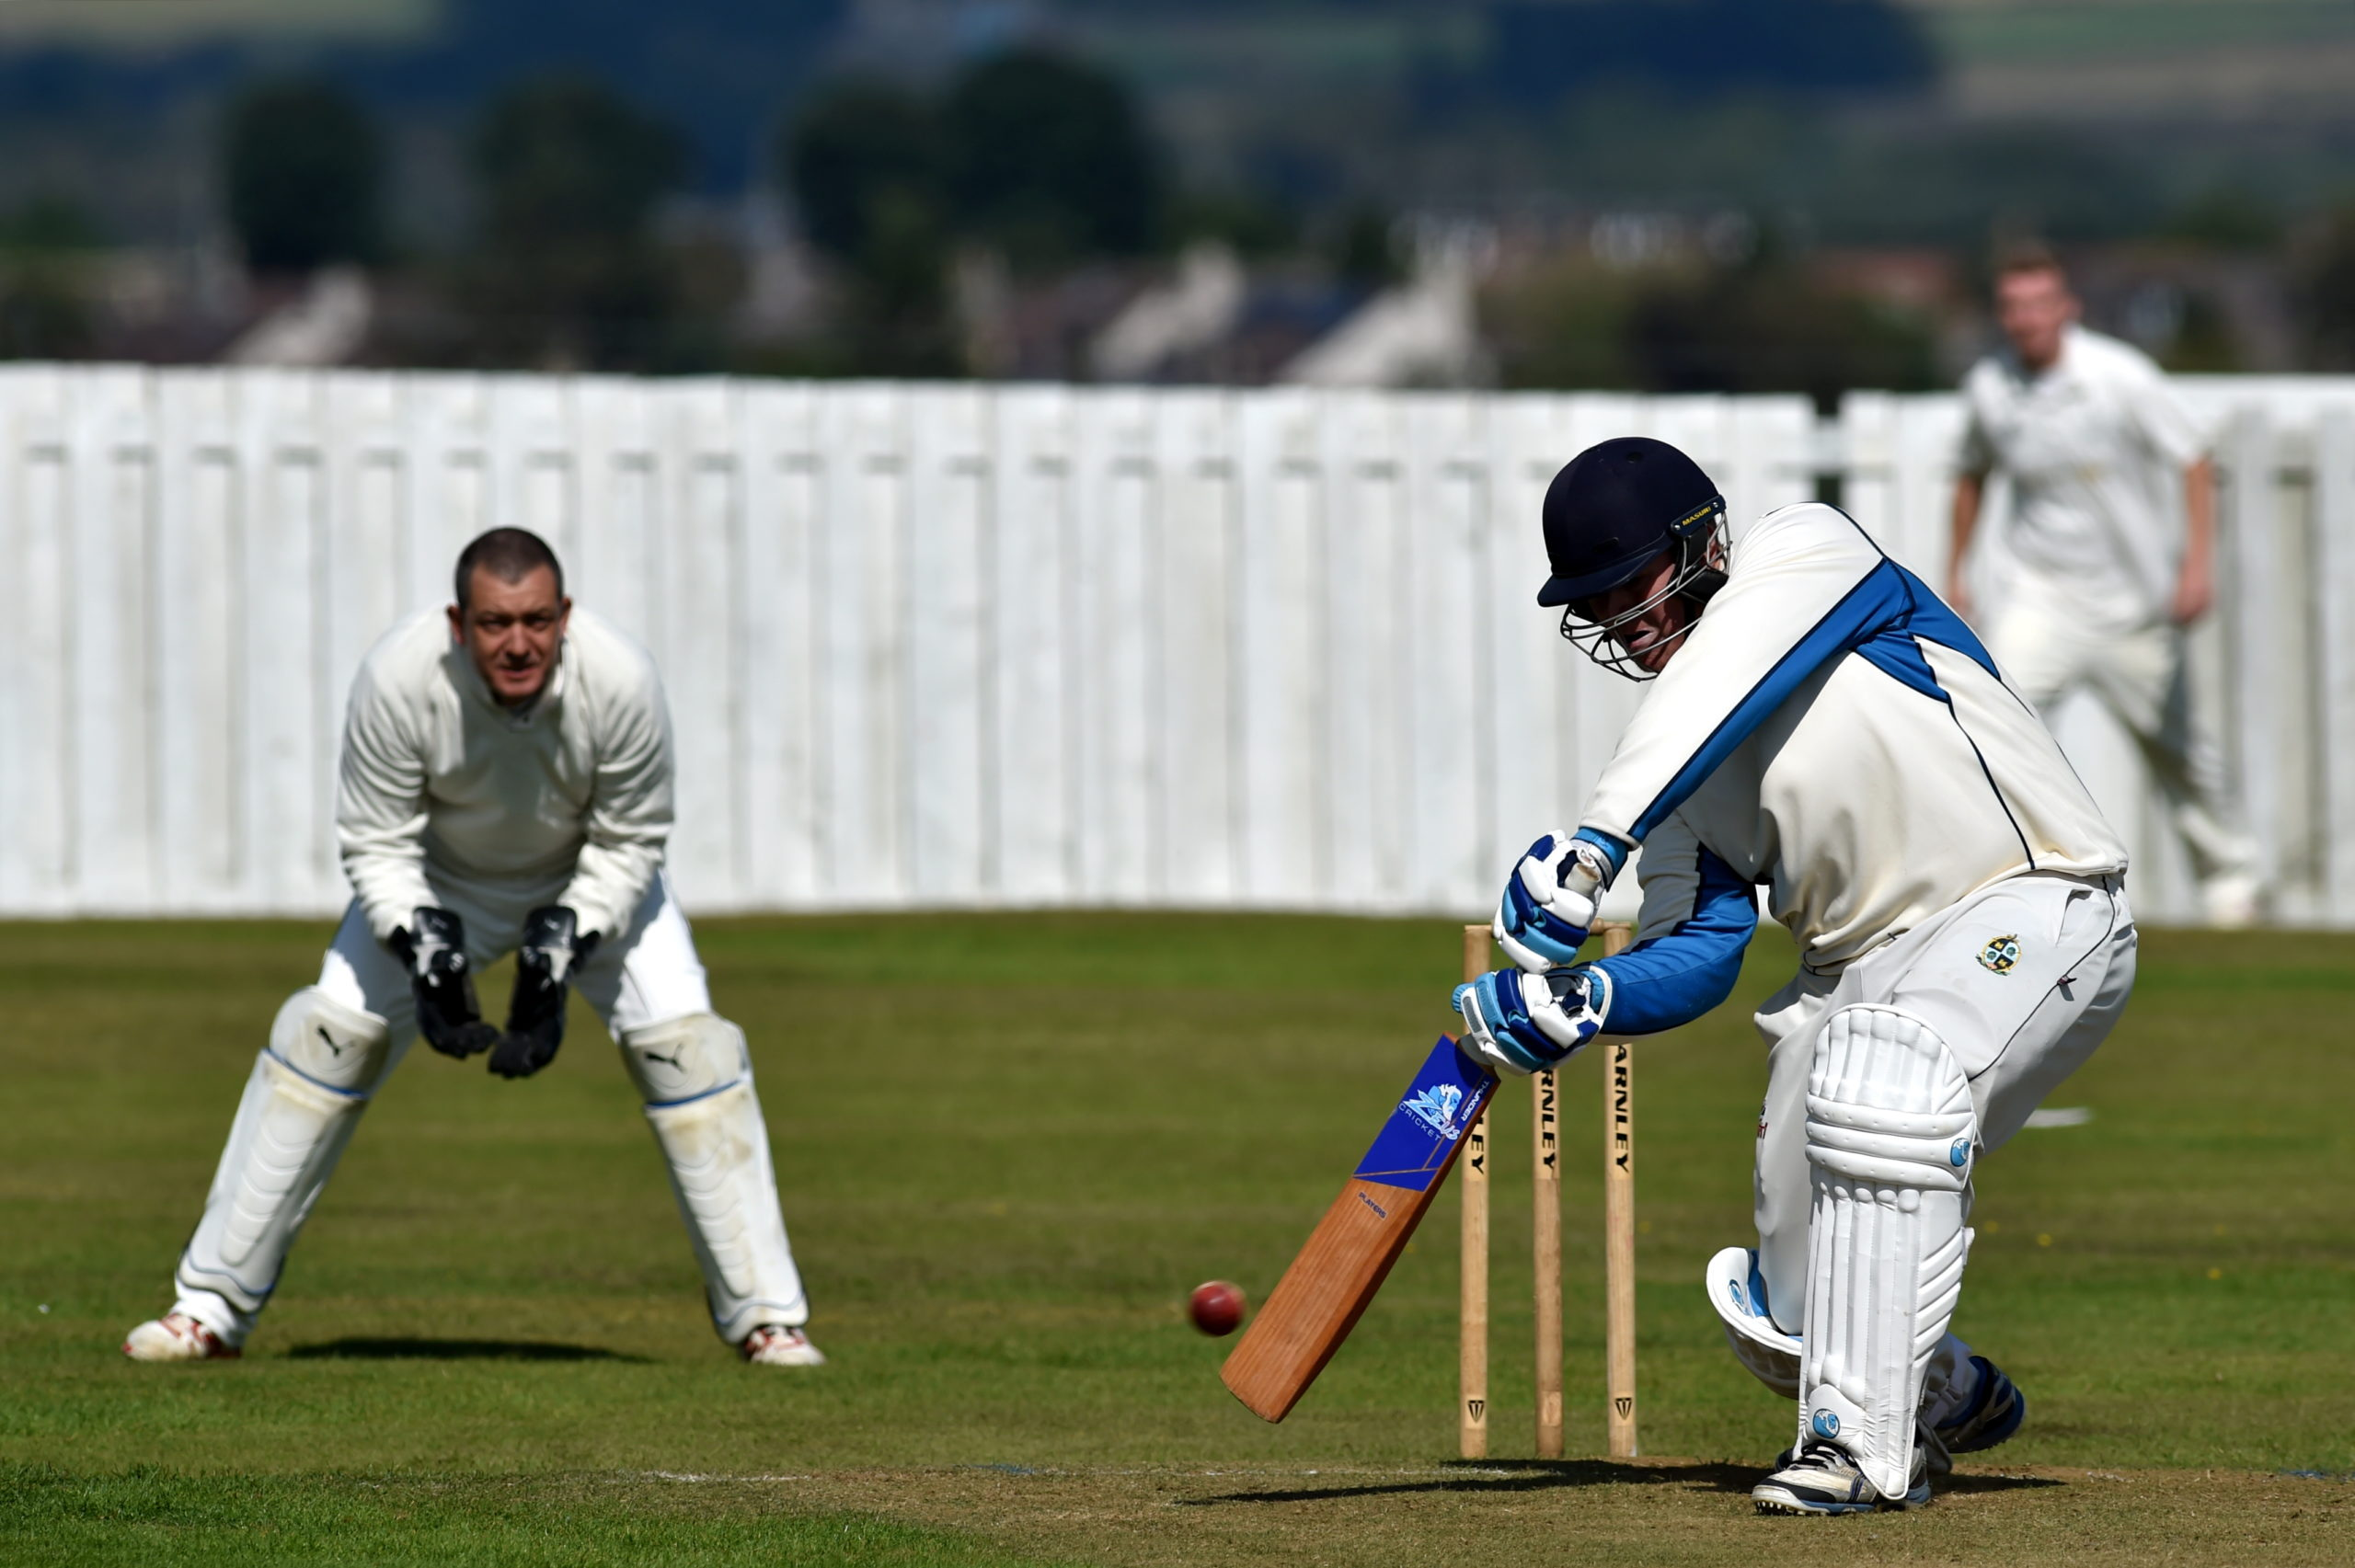 Stoneywood-Dyce CC v Strathmore CC at People's Park, Wellheads Drive, Aberdeen. Picture of Stoneywood-Dyce batsman Jack Mitchell. Picture by Kenny Elrick.